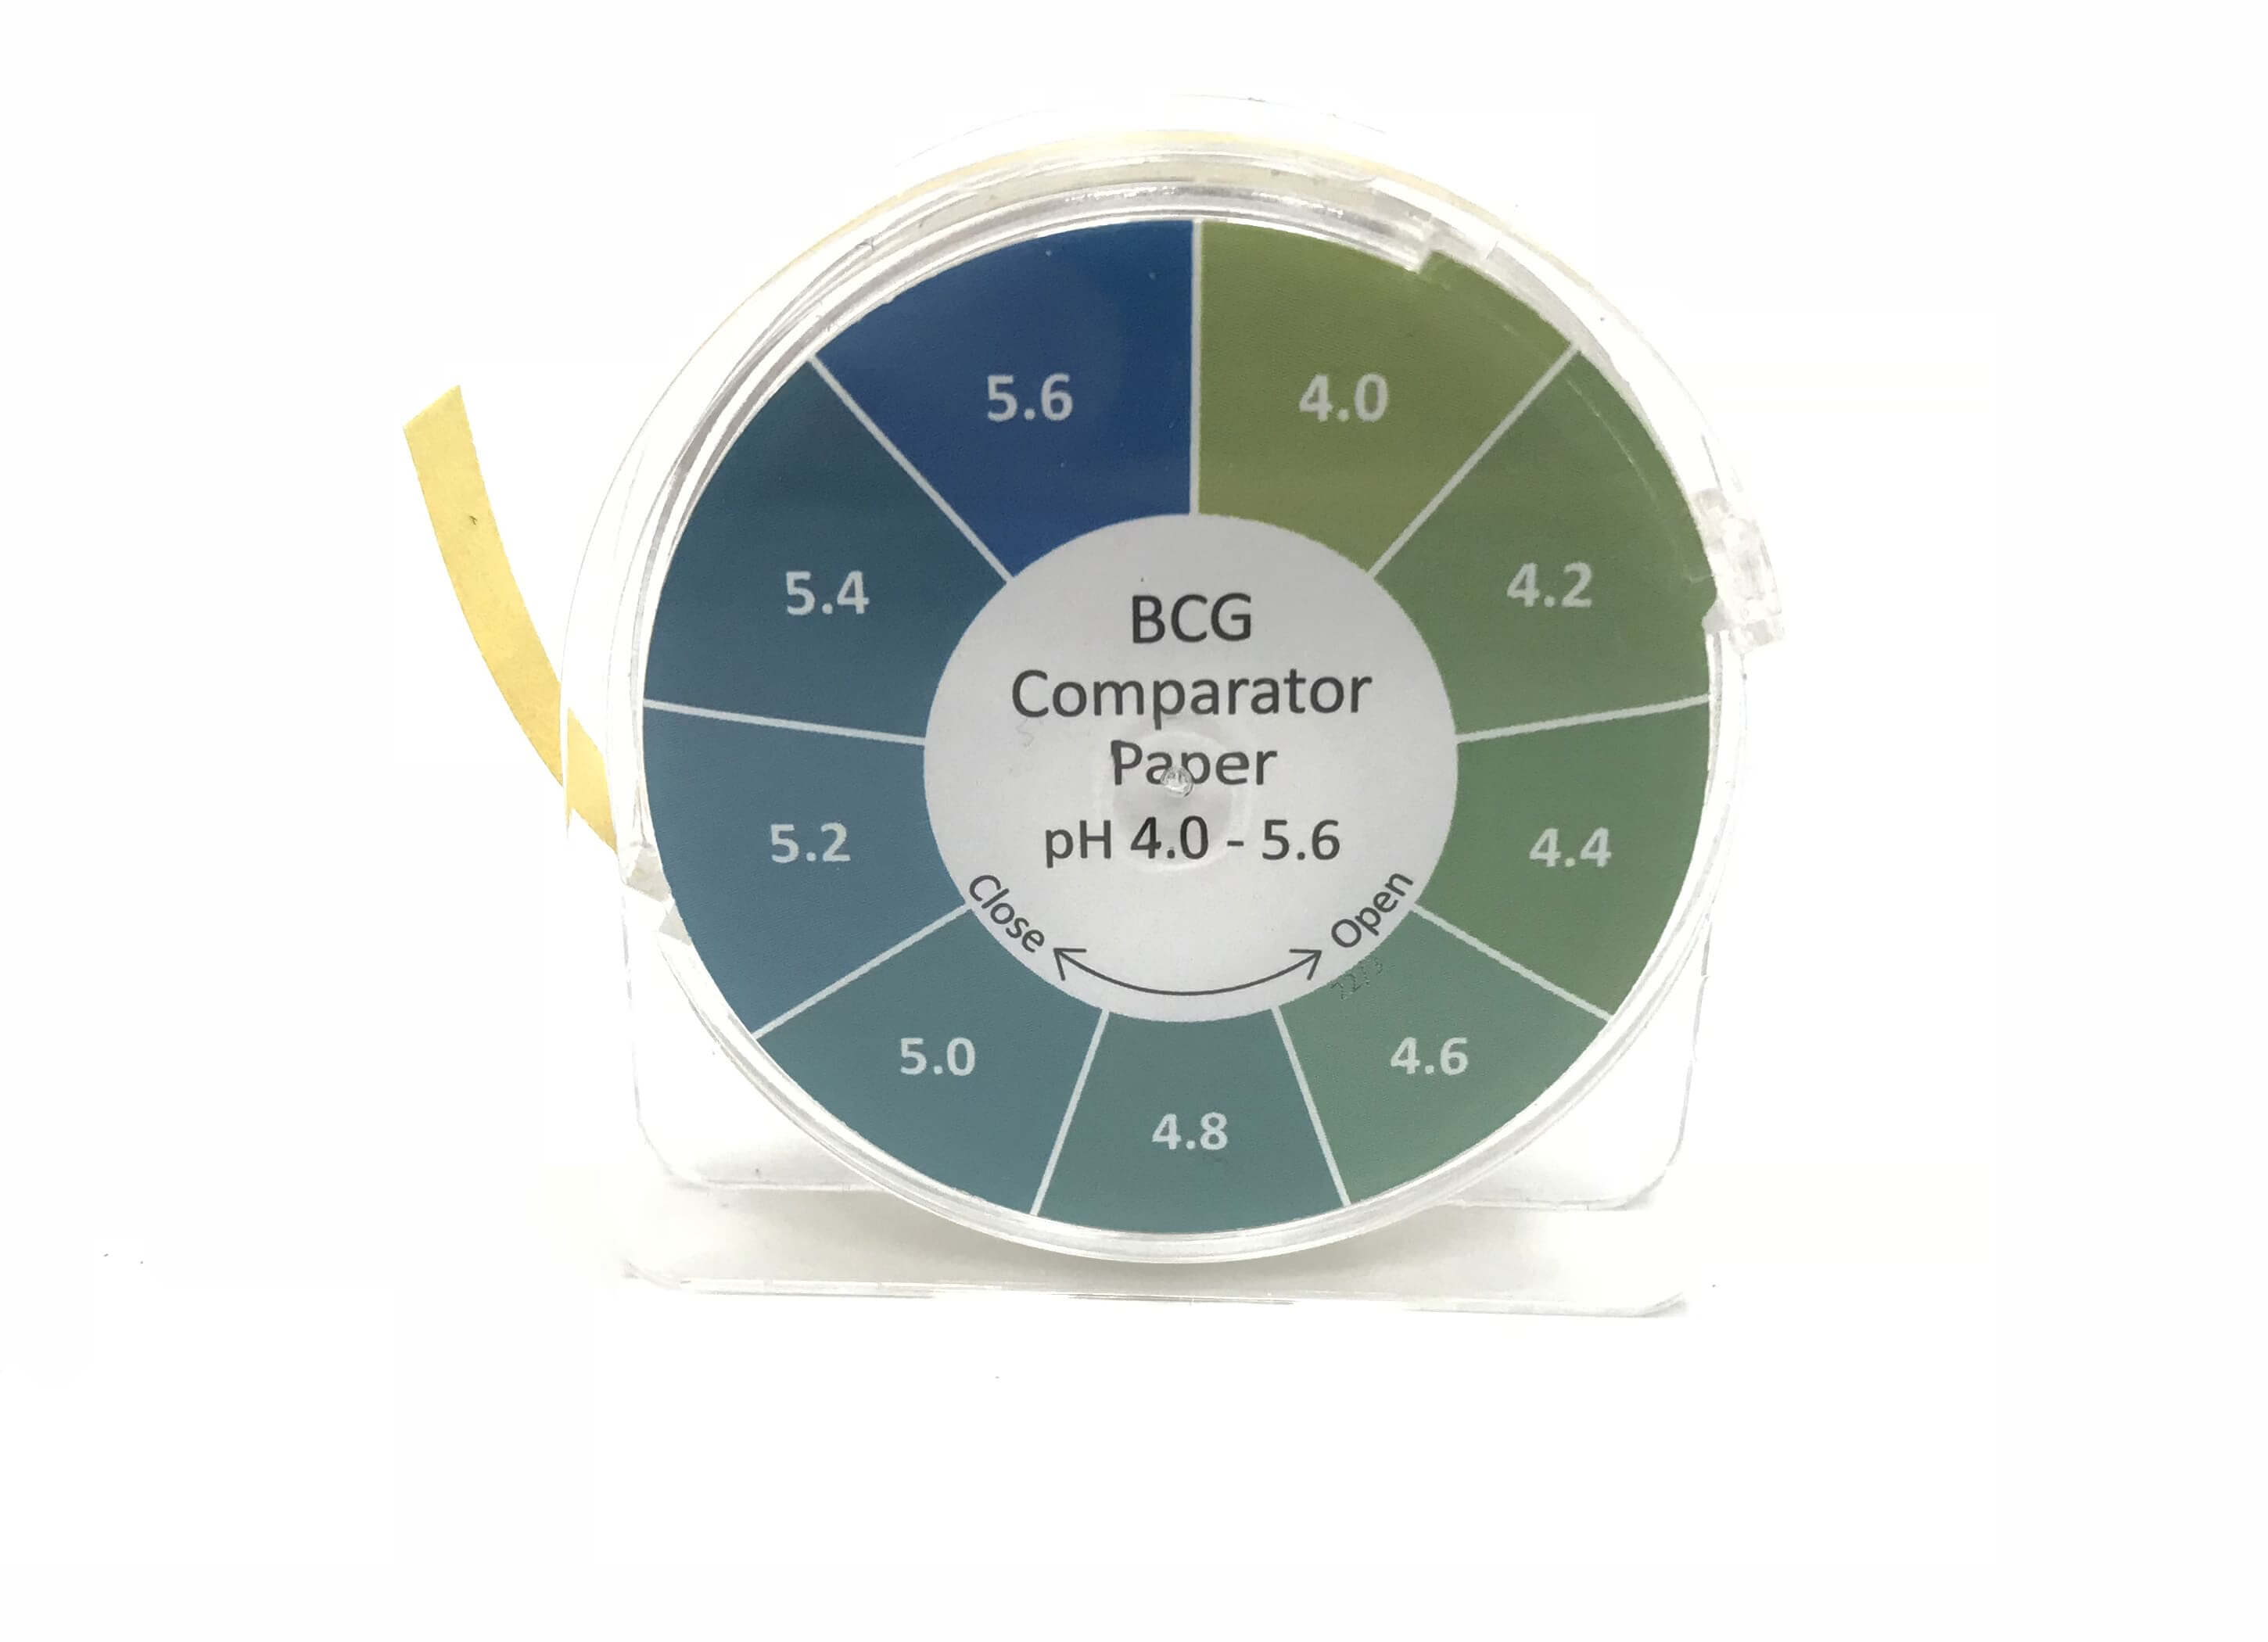 BCG Comparator Paper pH 4.0 - 5.6